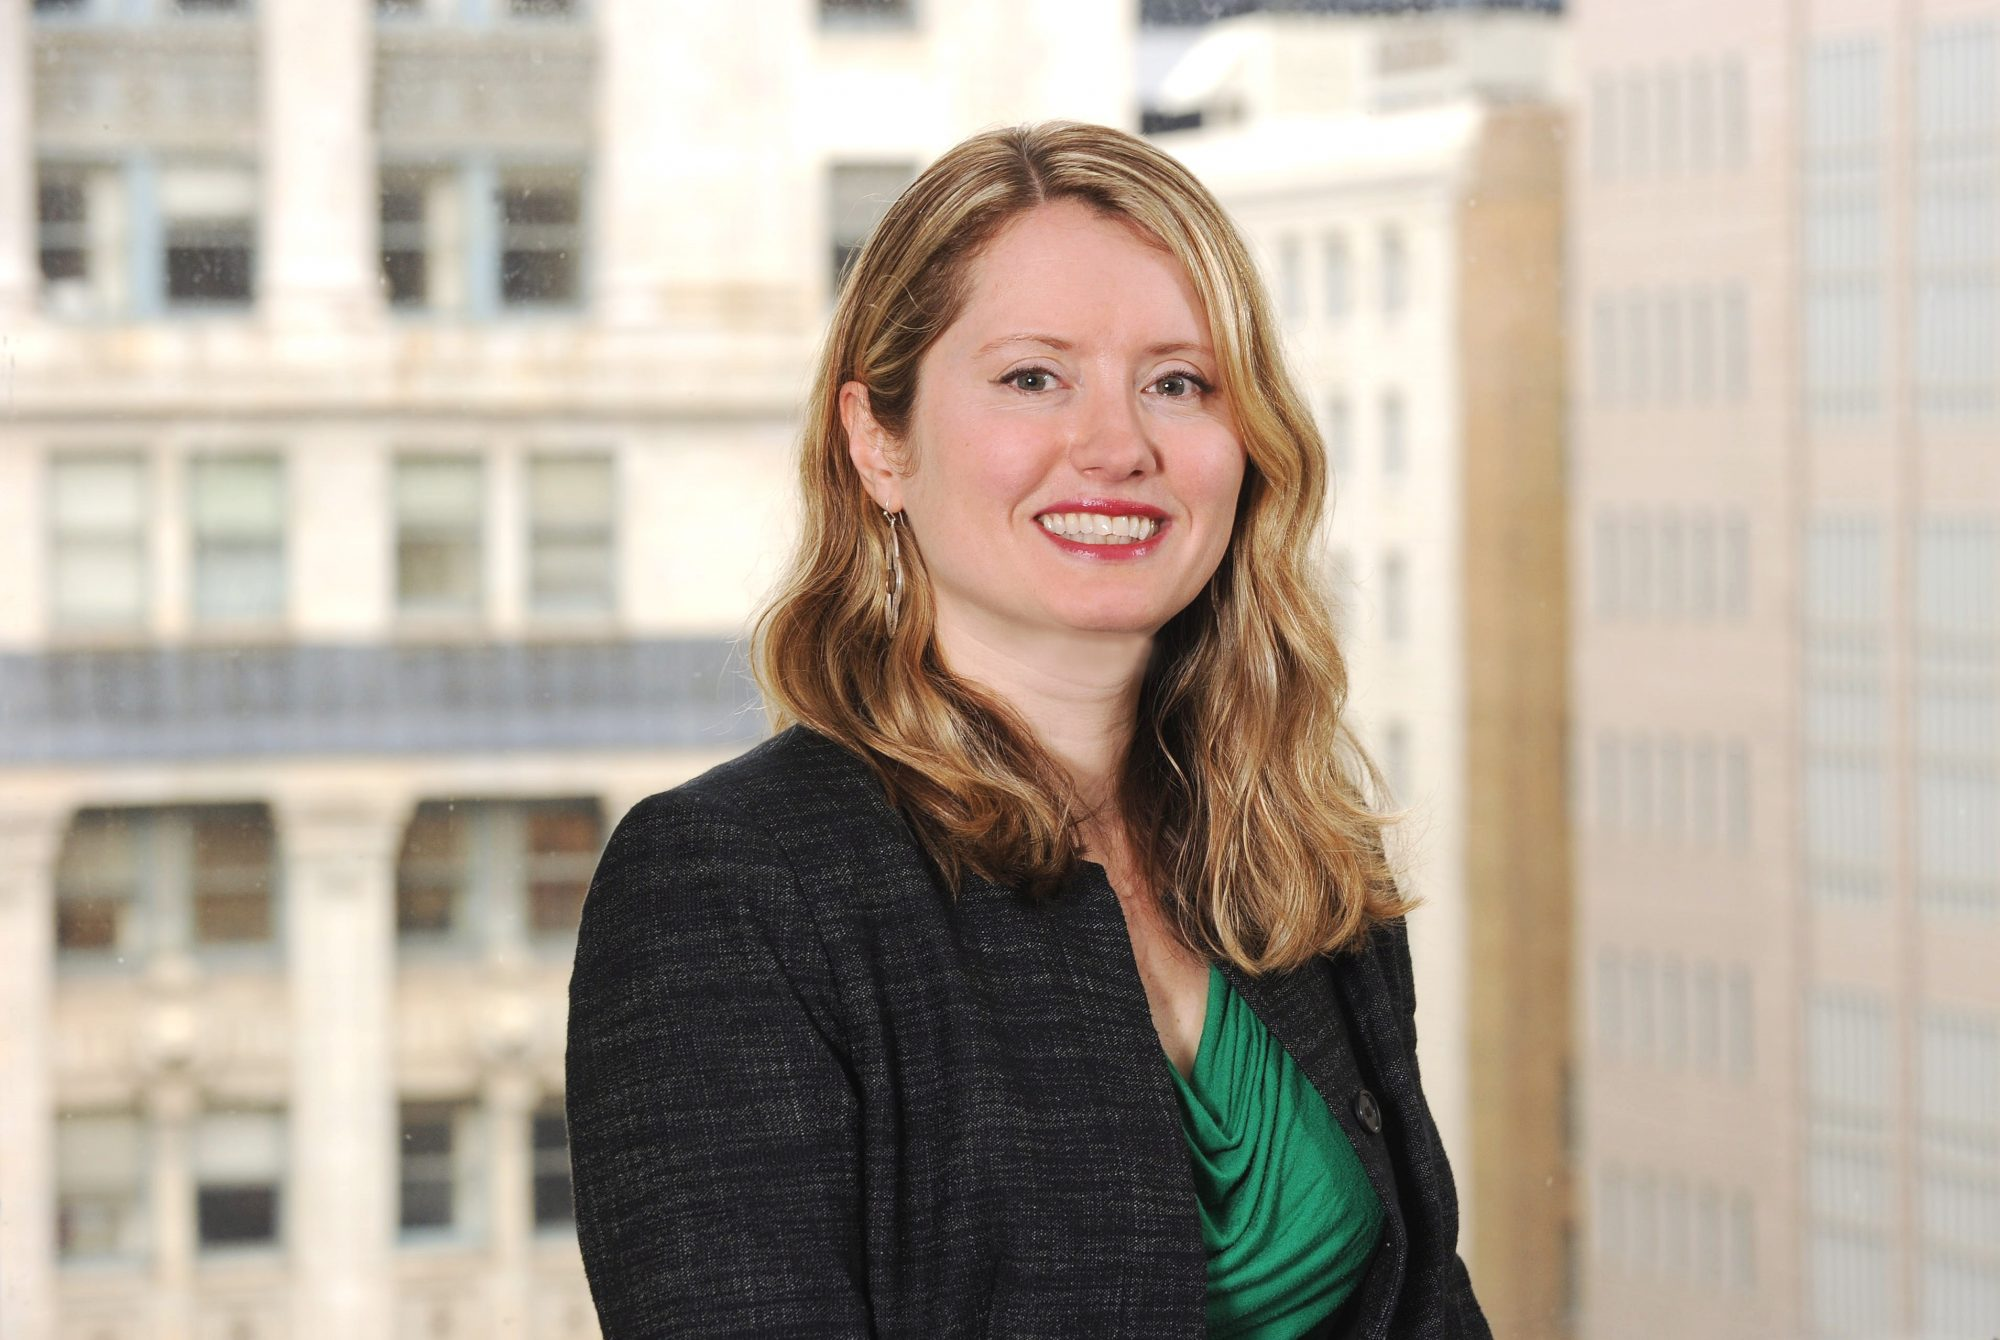 Partner Beata Leja Joins Board Of Directors For Young Center For Immigrant Children's Rights